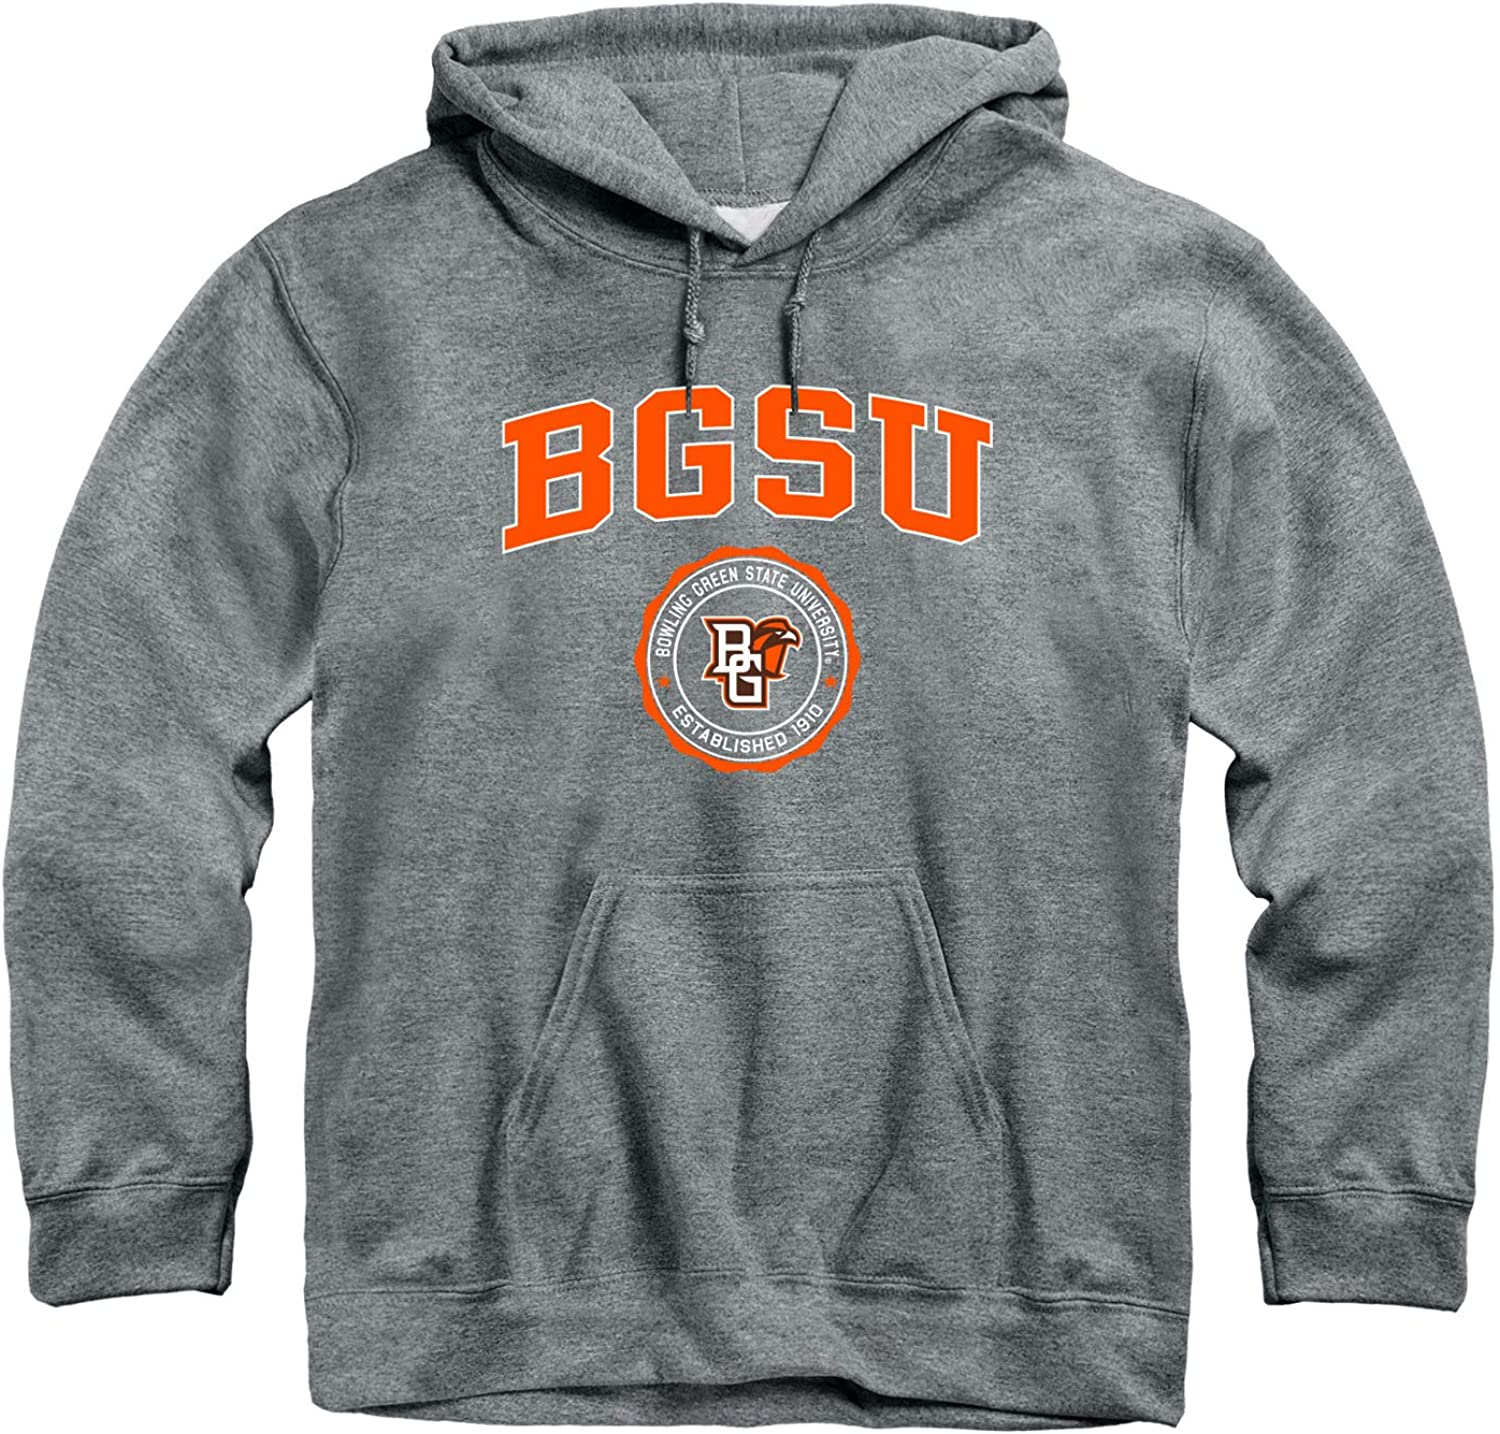 Ivysport Hooded Sweatshirt, Cotton/Poly Blend, Heritage Logo Grey, NCAA Colleges and Universities